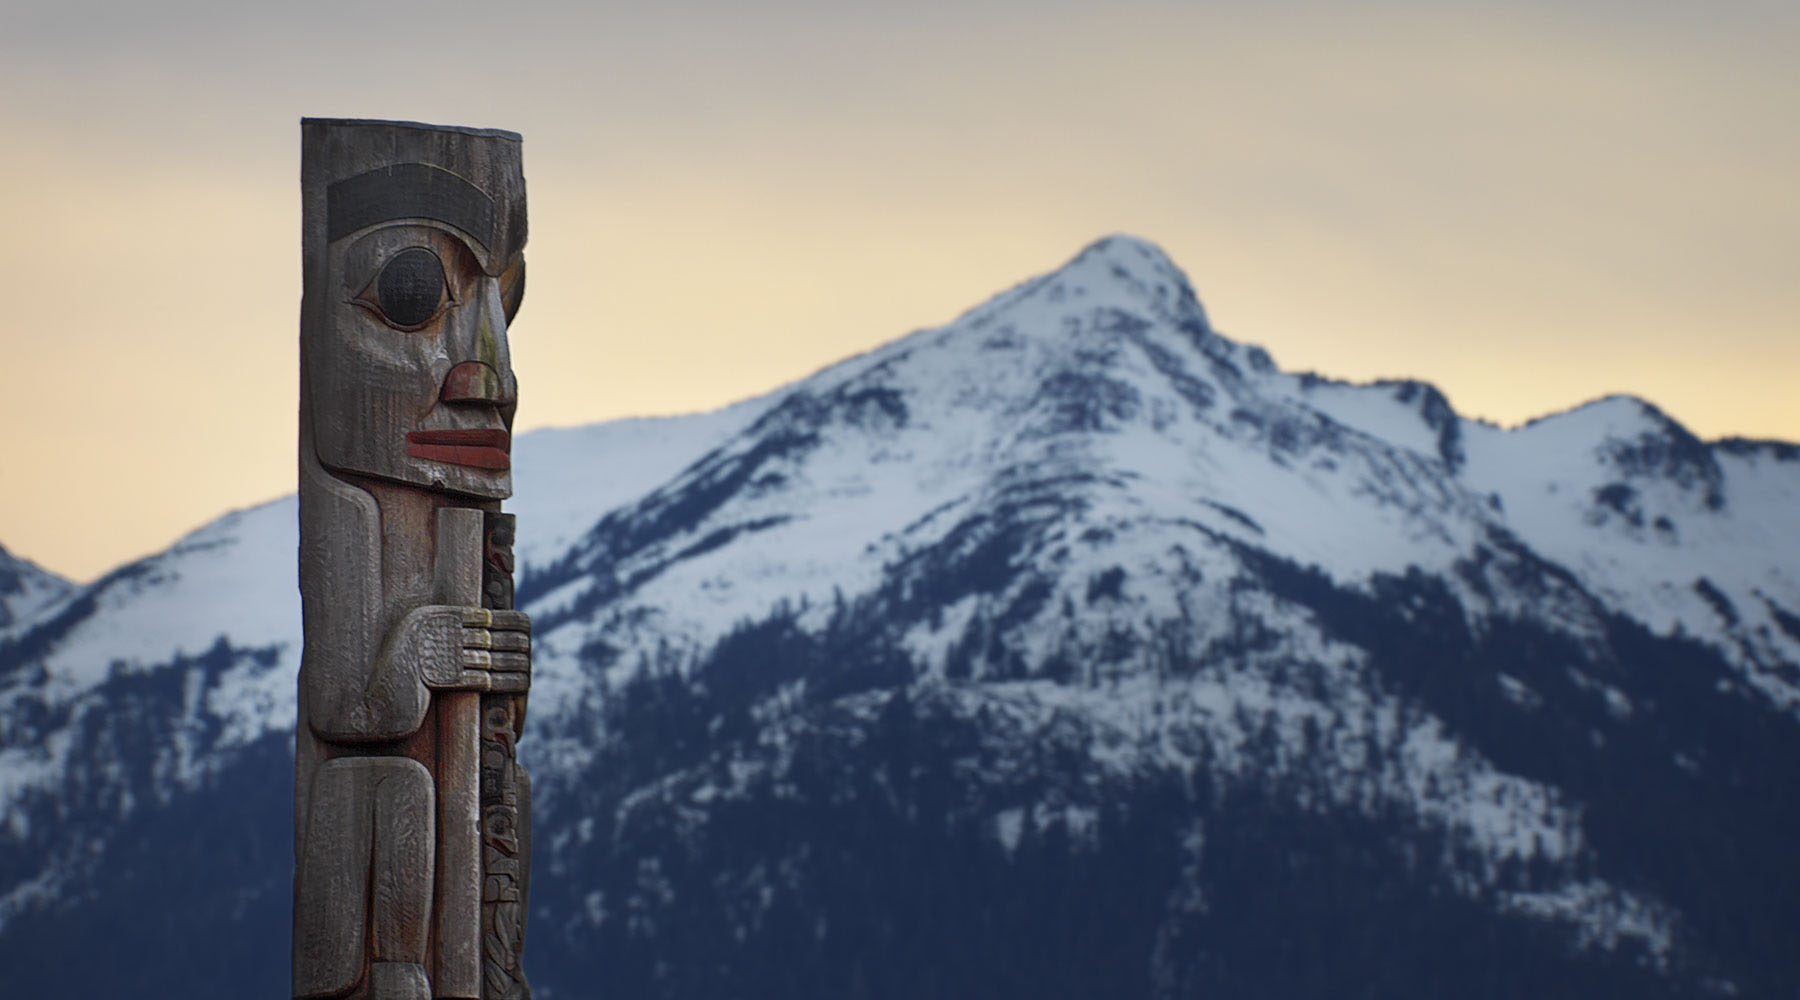 A simple photo of a totem photo and mountain range in Alaska.